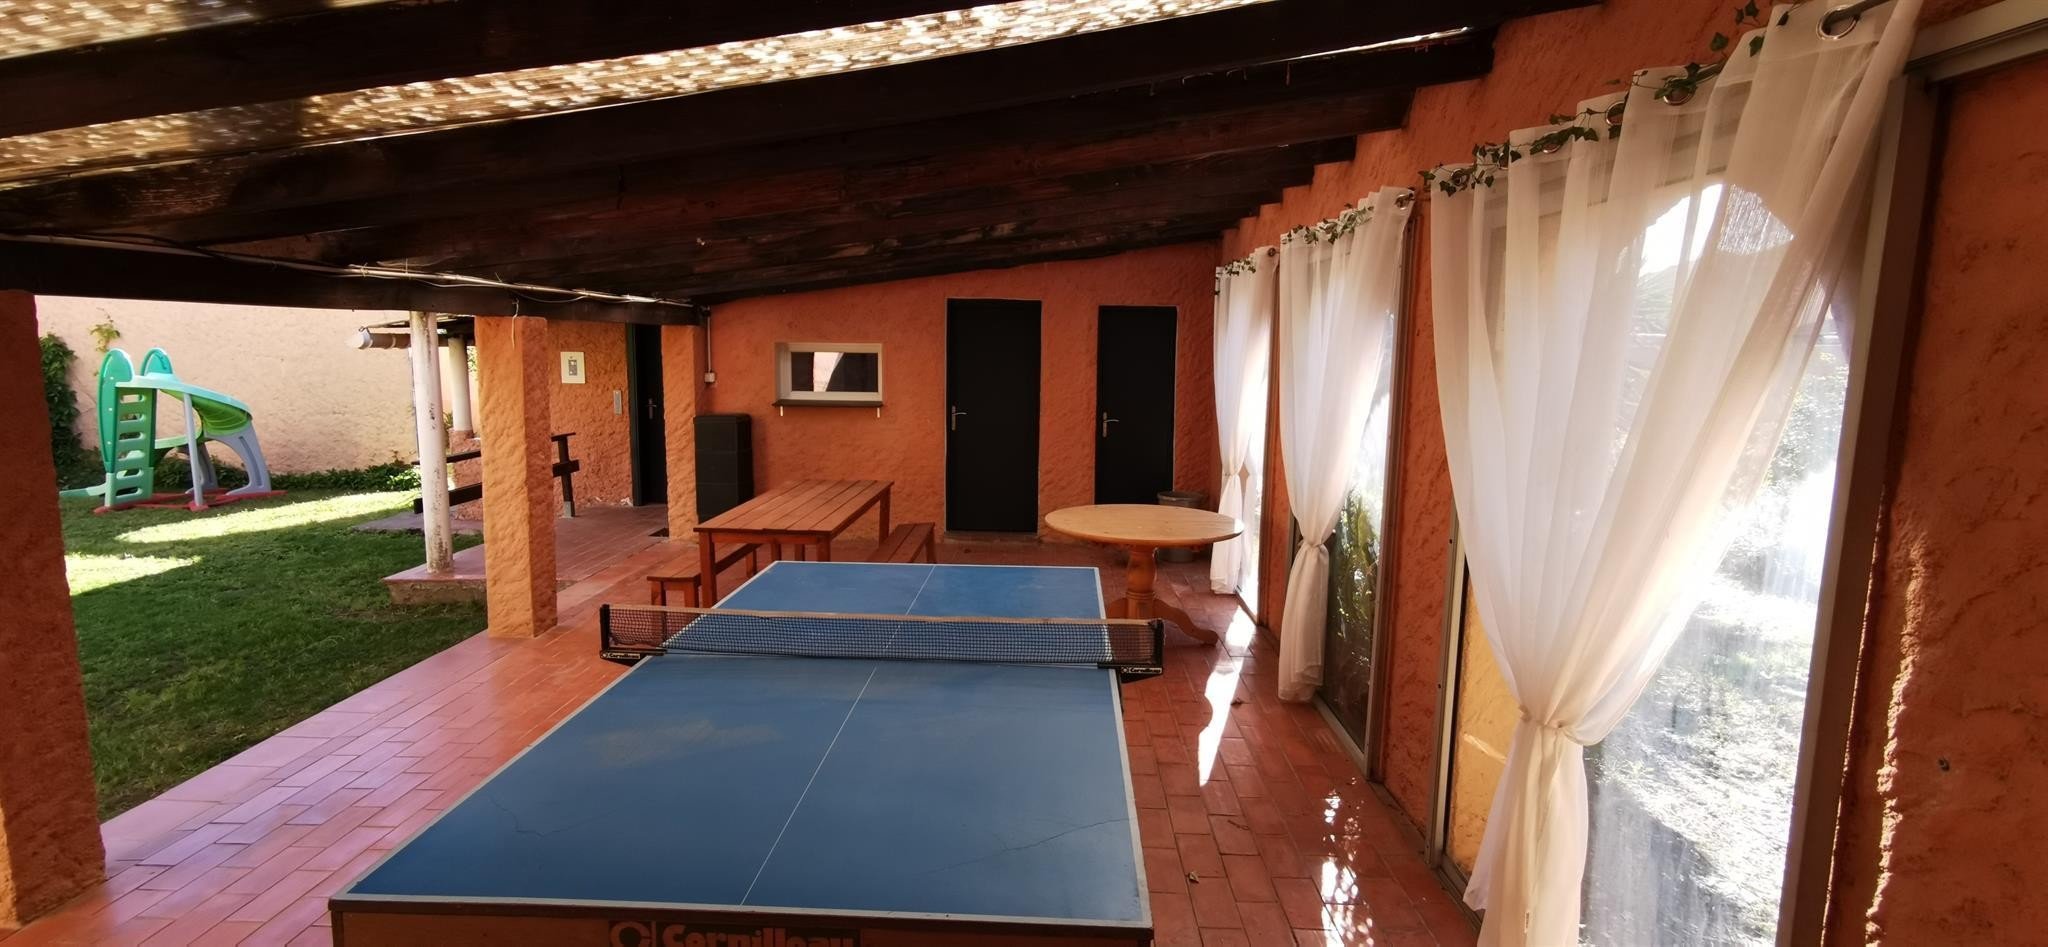 Exte rieur ping pong